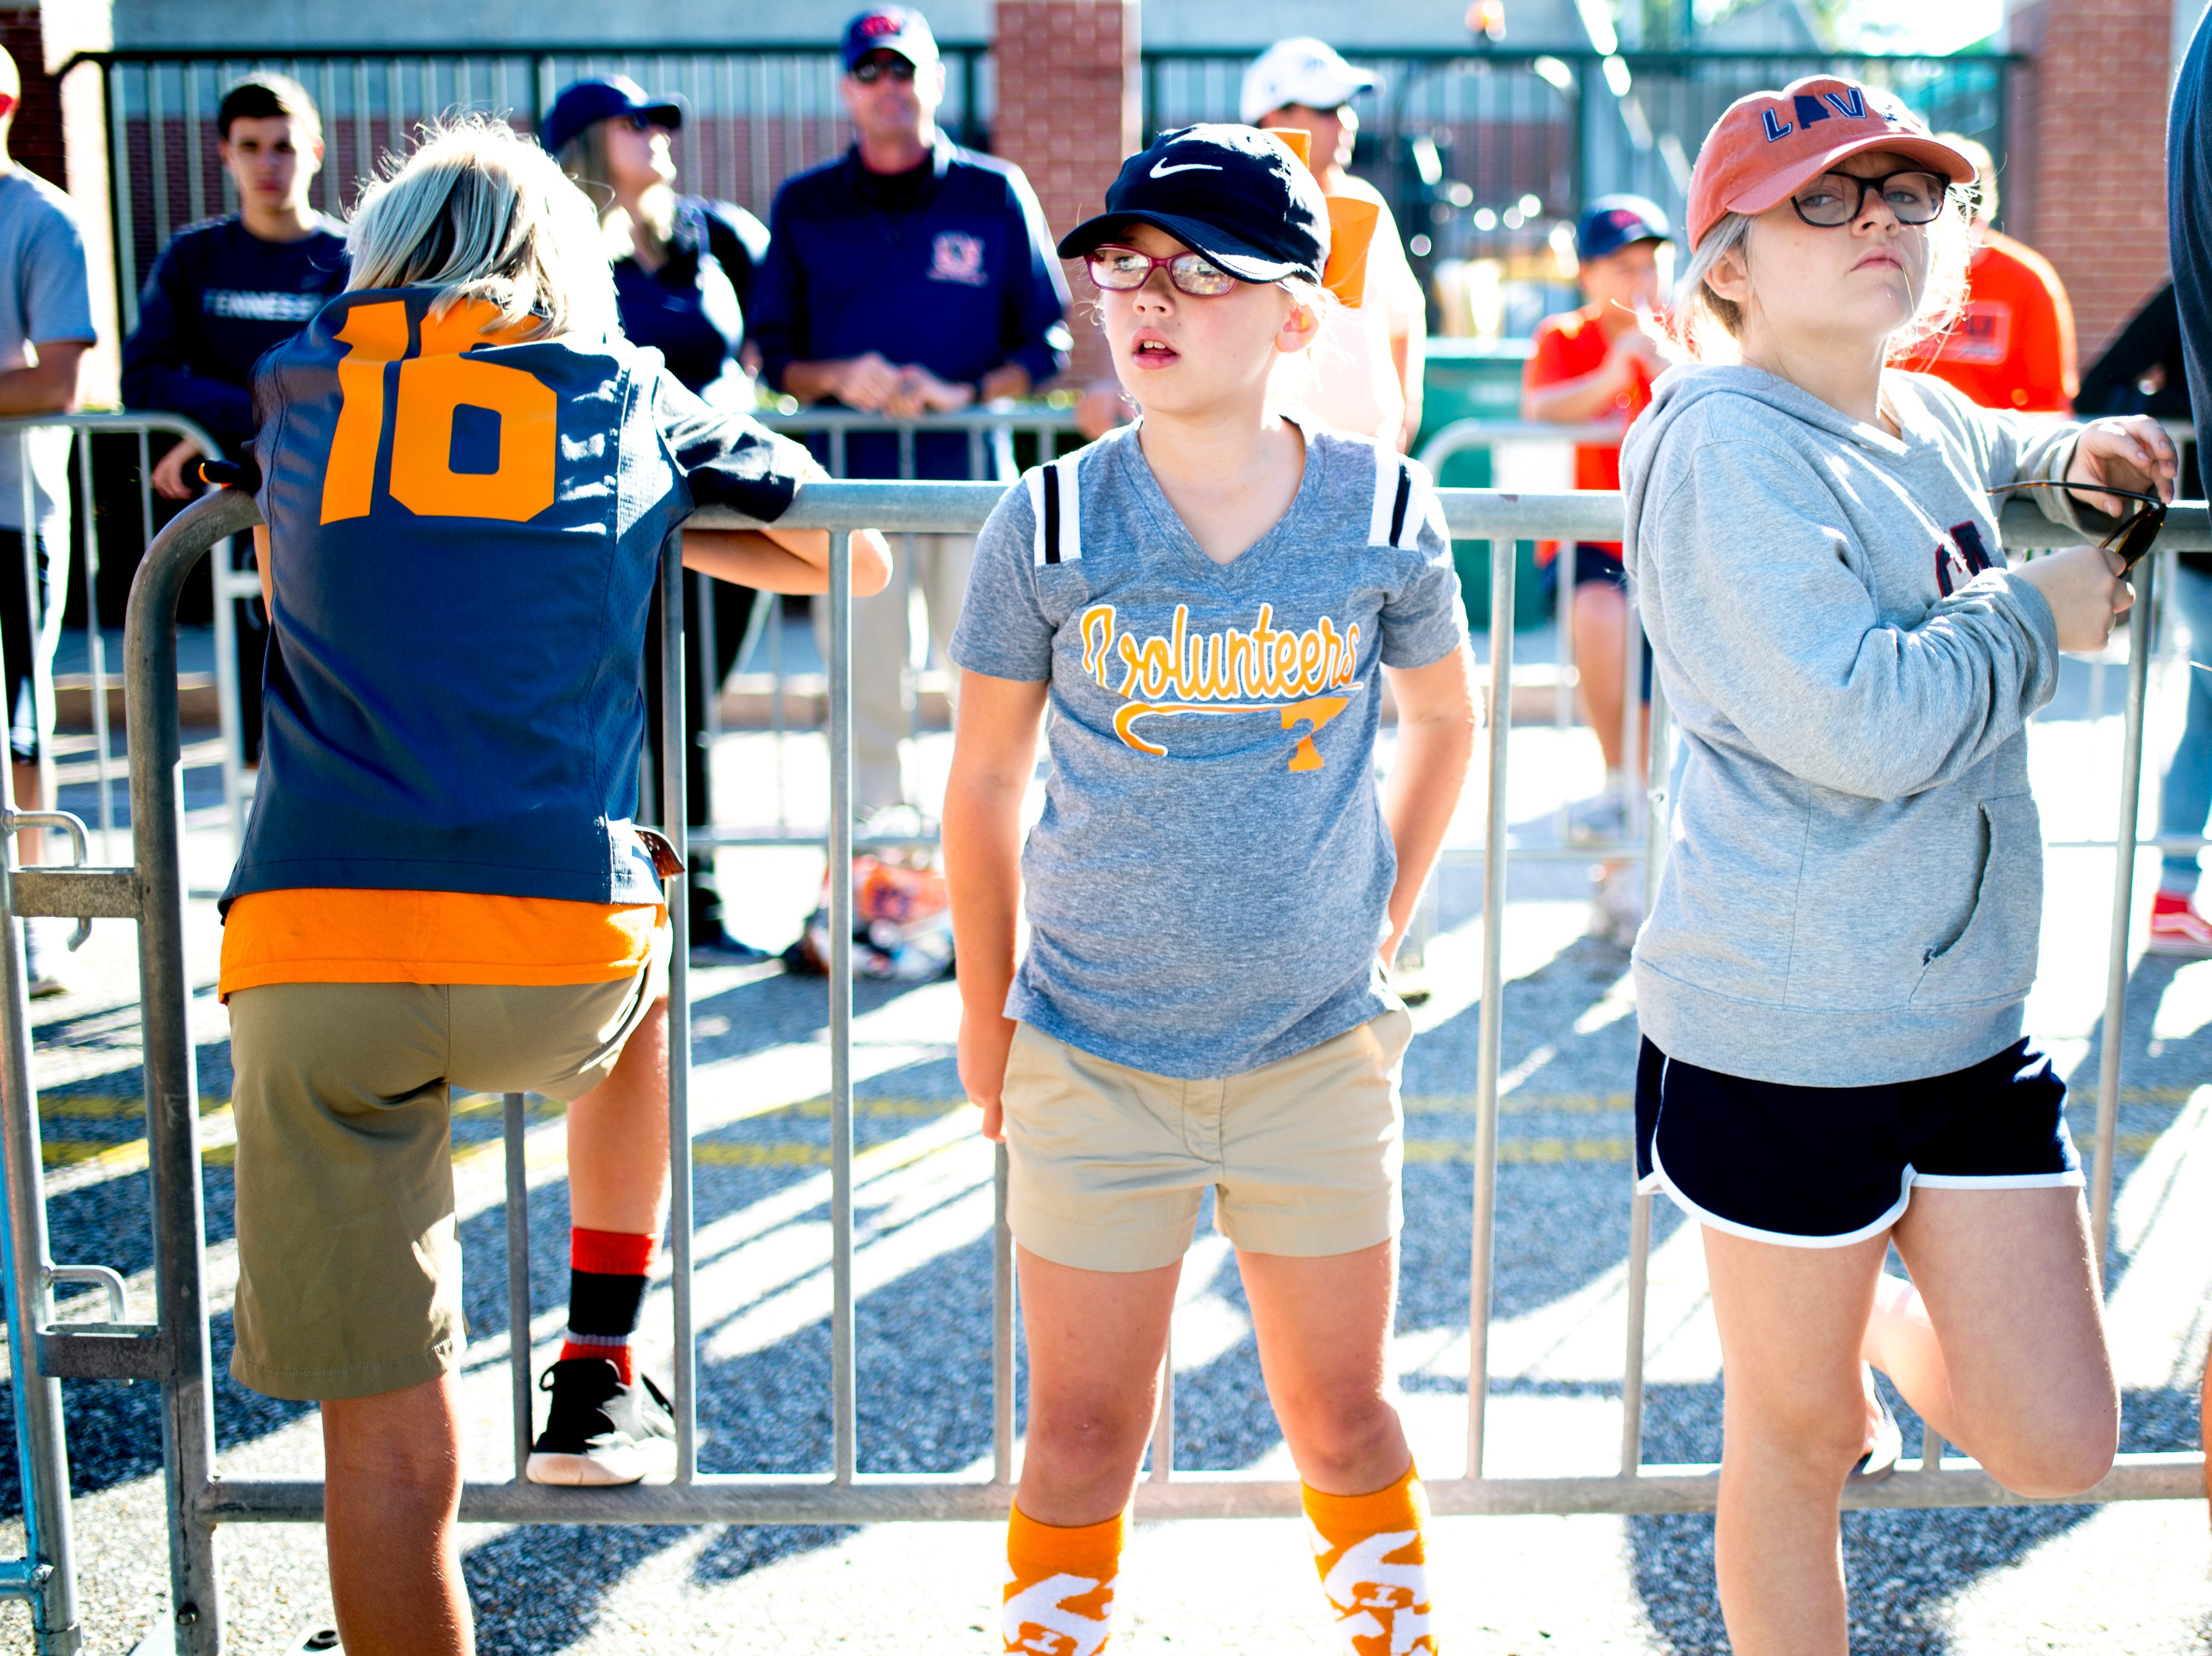 Vol fans hang out outside of the stadium during a game between Tennessee and Auburn at Jordan-Hare Stadium in Auburn, Alabama on Saturday, October 13, 2018.